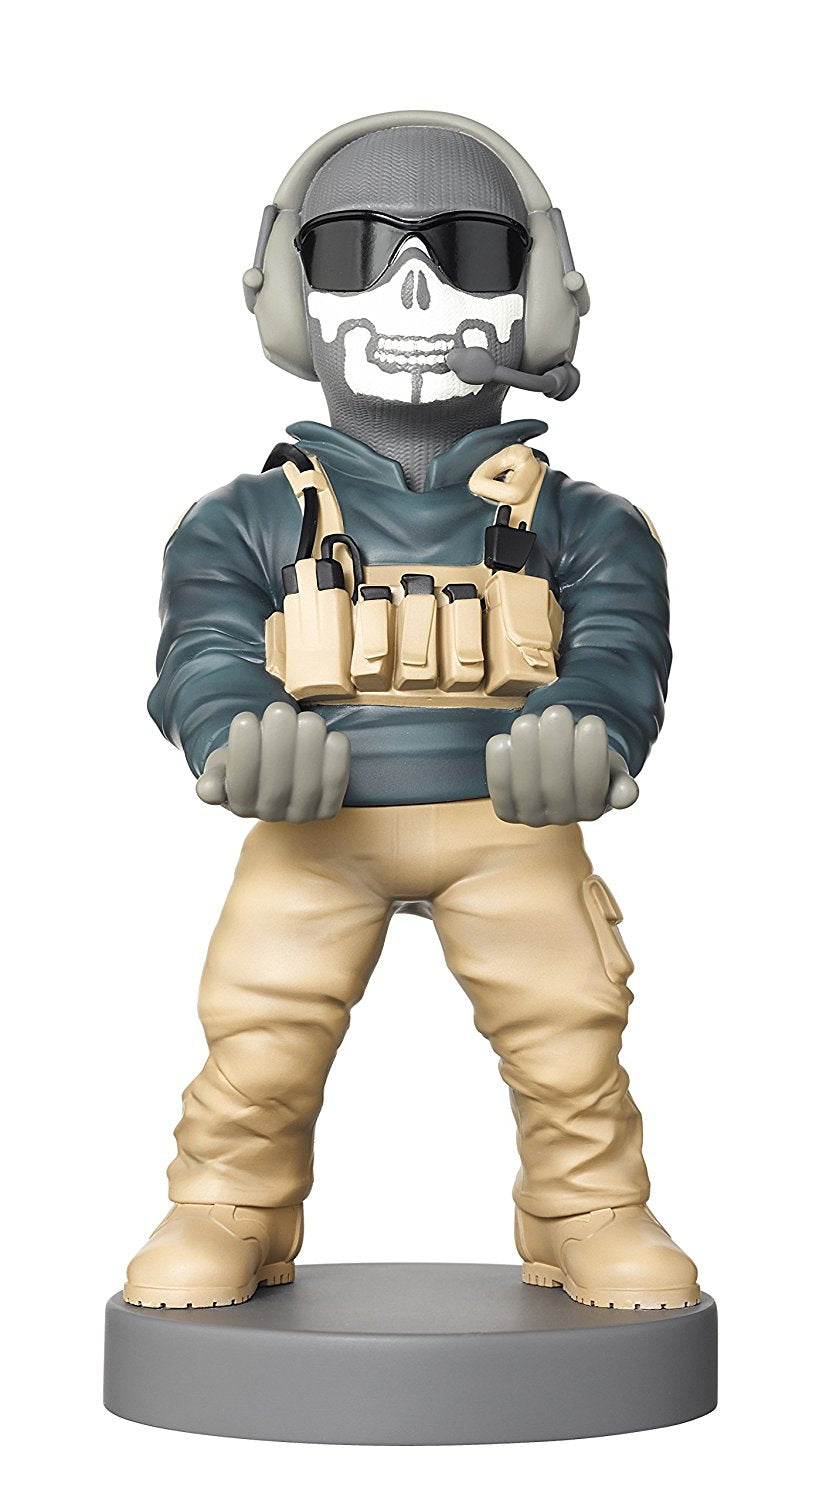 Cable Guy Collectable Device Holder - Ghost